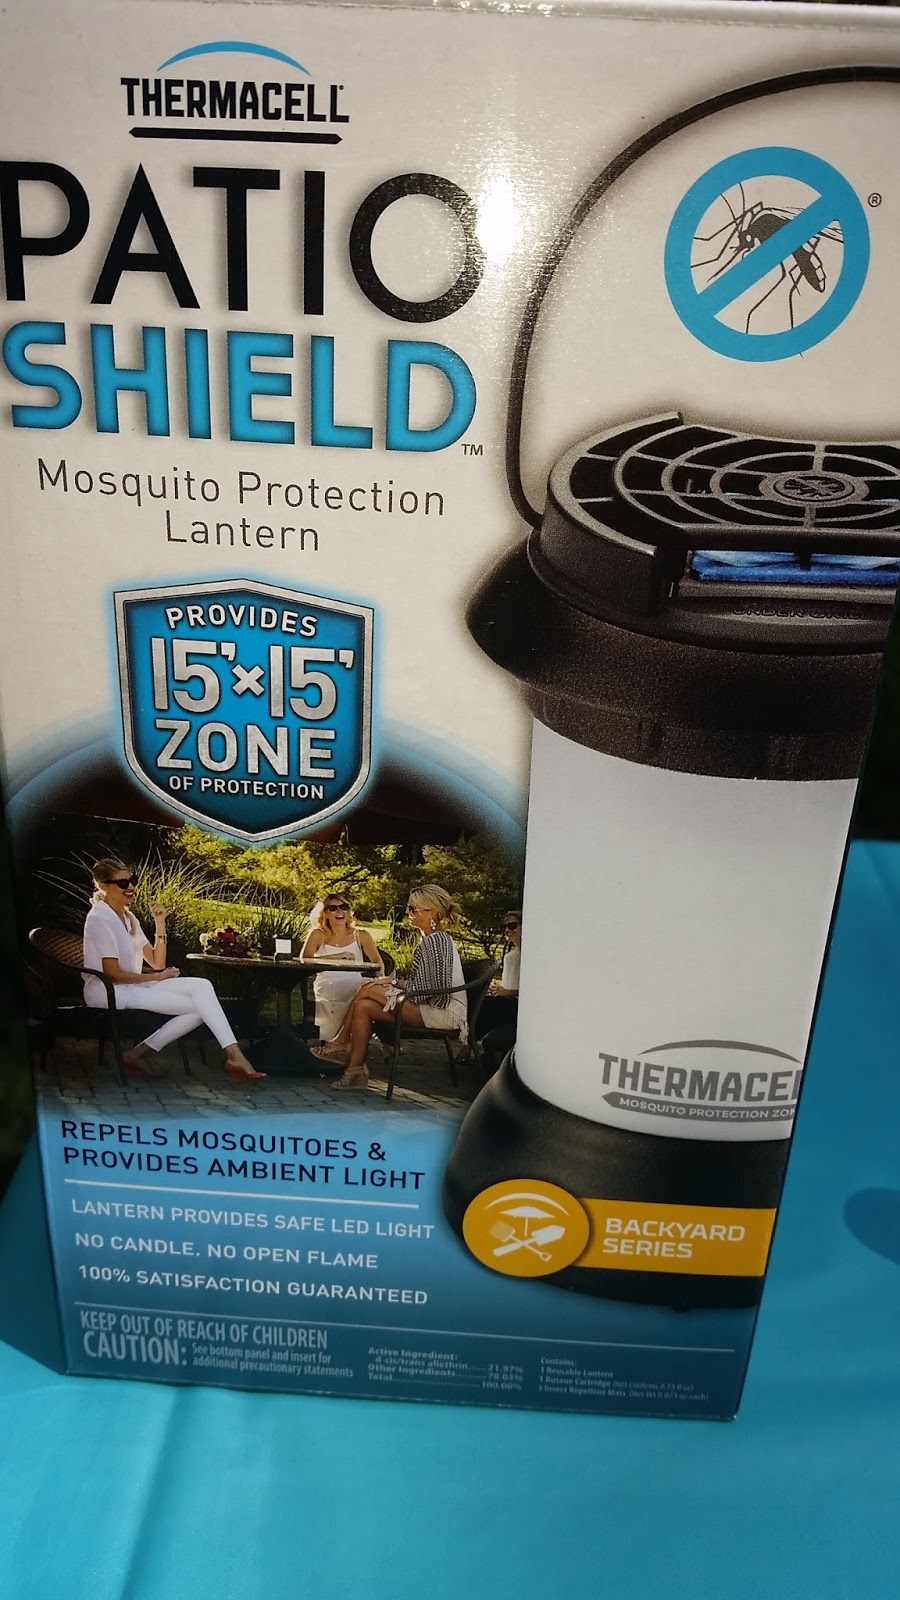 Thermacell Patio Shield Mosquito Protection Lantern Review .